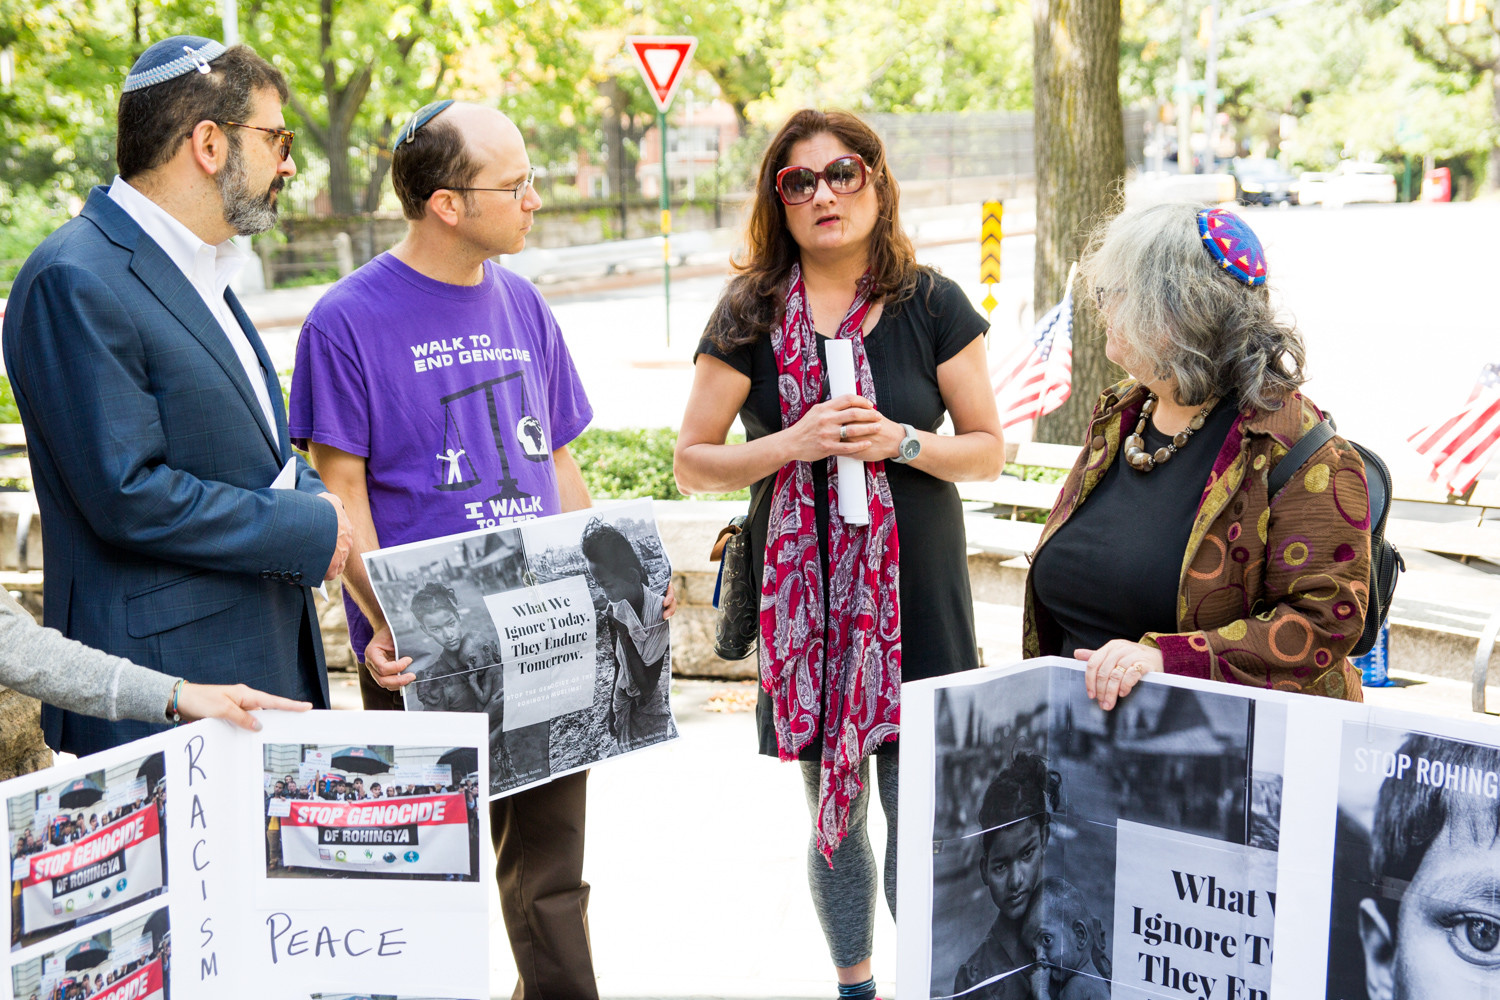 Mehnaz Afridi, a professor of religious studies at Manhattan College, talks about the crisis facing Rohingya in Myanmar at a rally in Riverdale in September. In the course of a month, over half a million Rohingya refugees fled to Bangladesh to escape persecution in their home country.